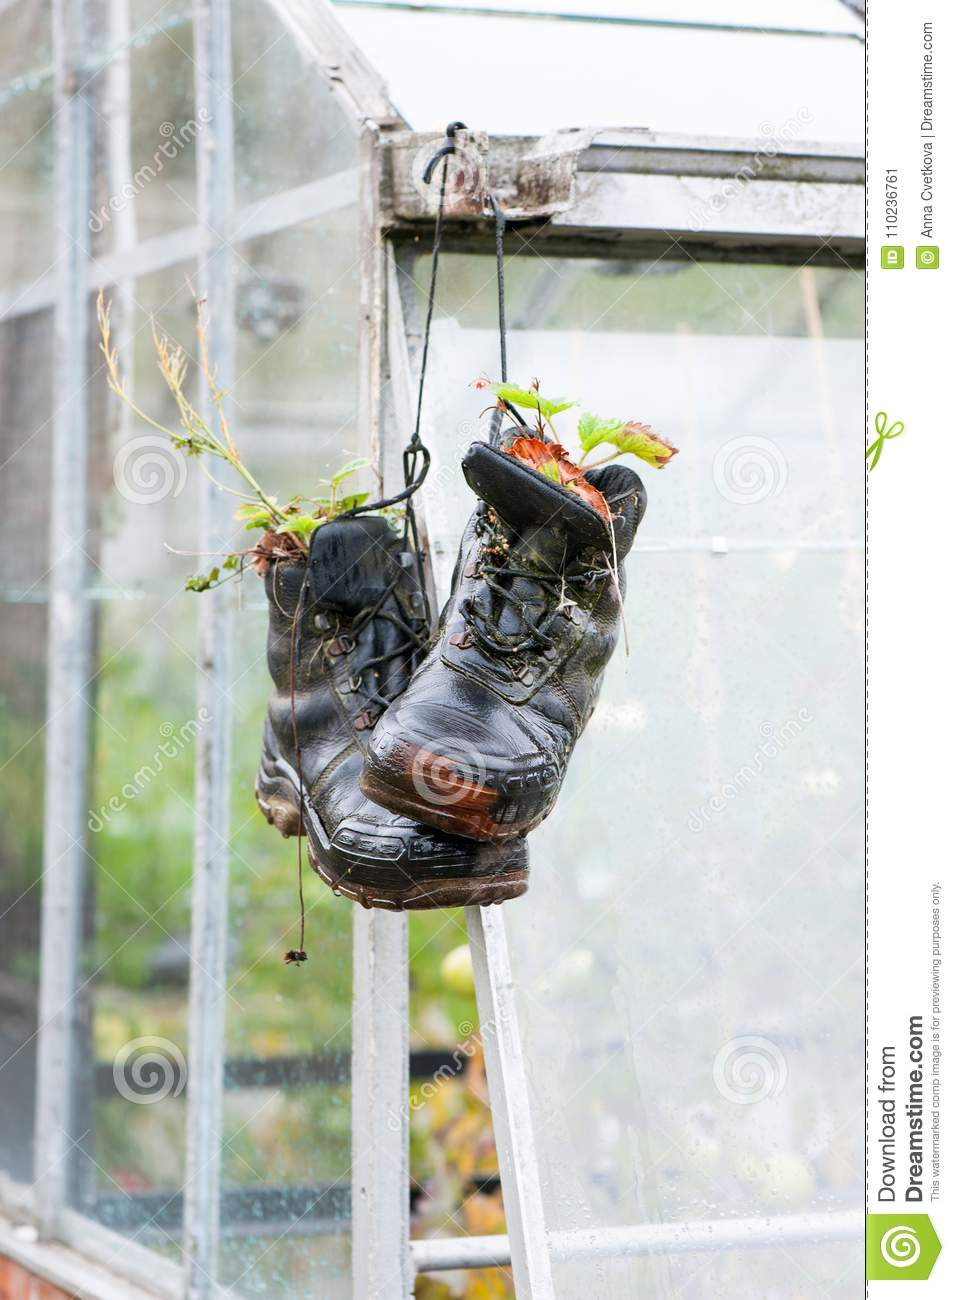 Idee Garten Schön Pair Od Abandoned Leather Black Shoes Used Like Flower Pots